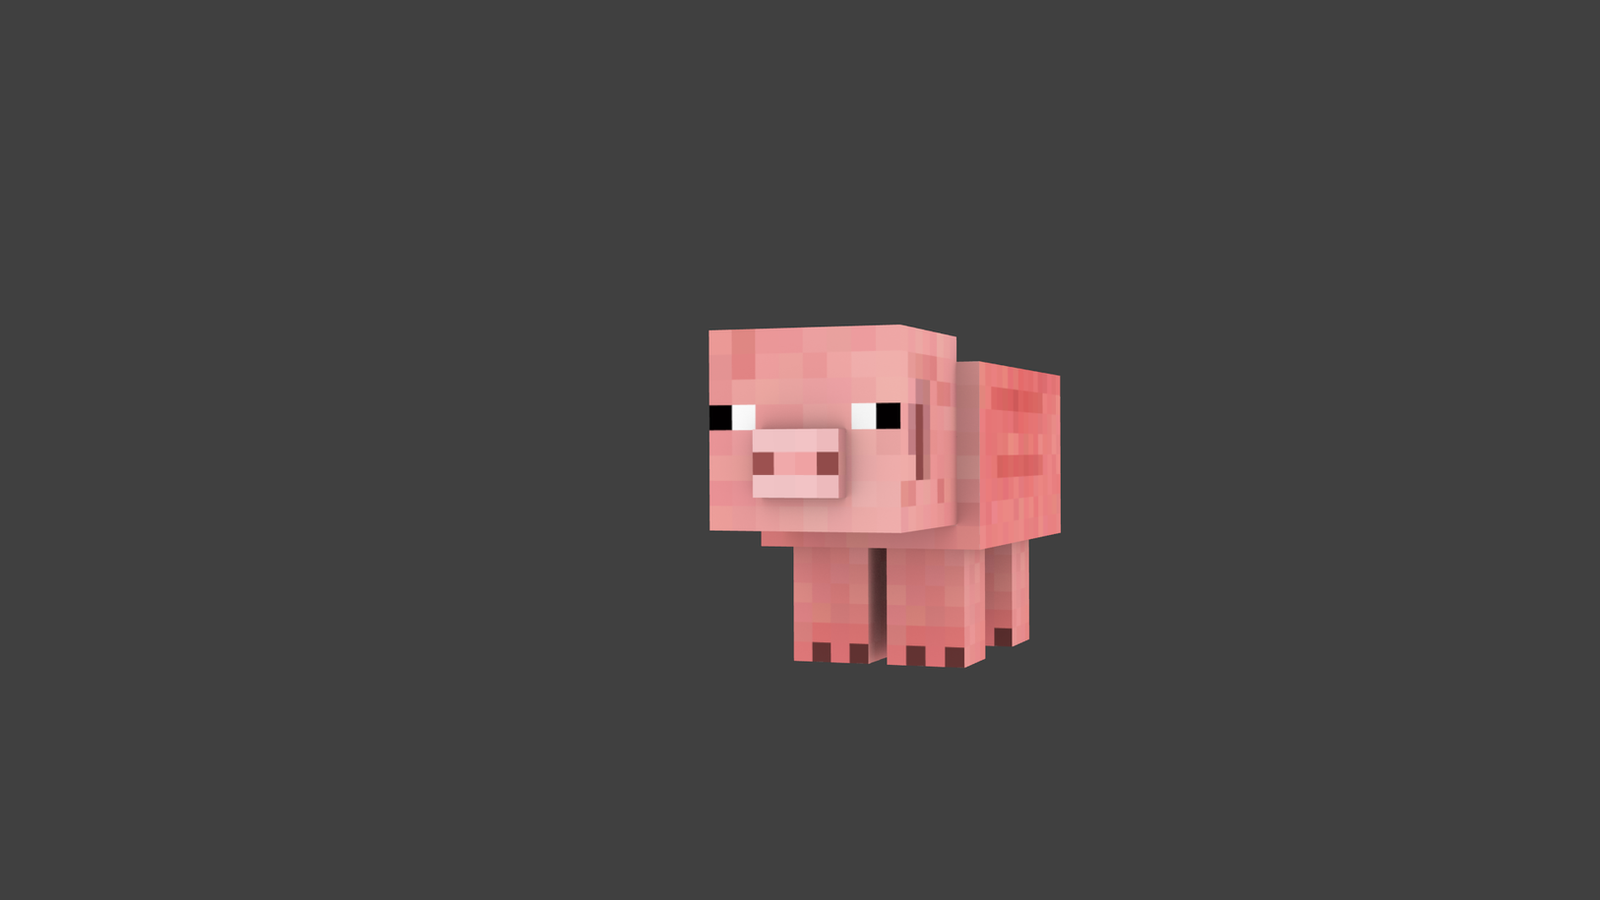 minecraft pig wallpapers download - photo #11